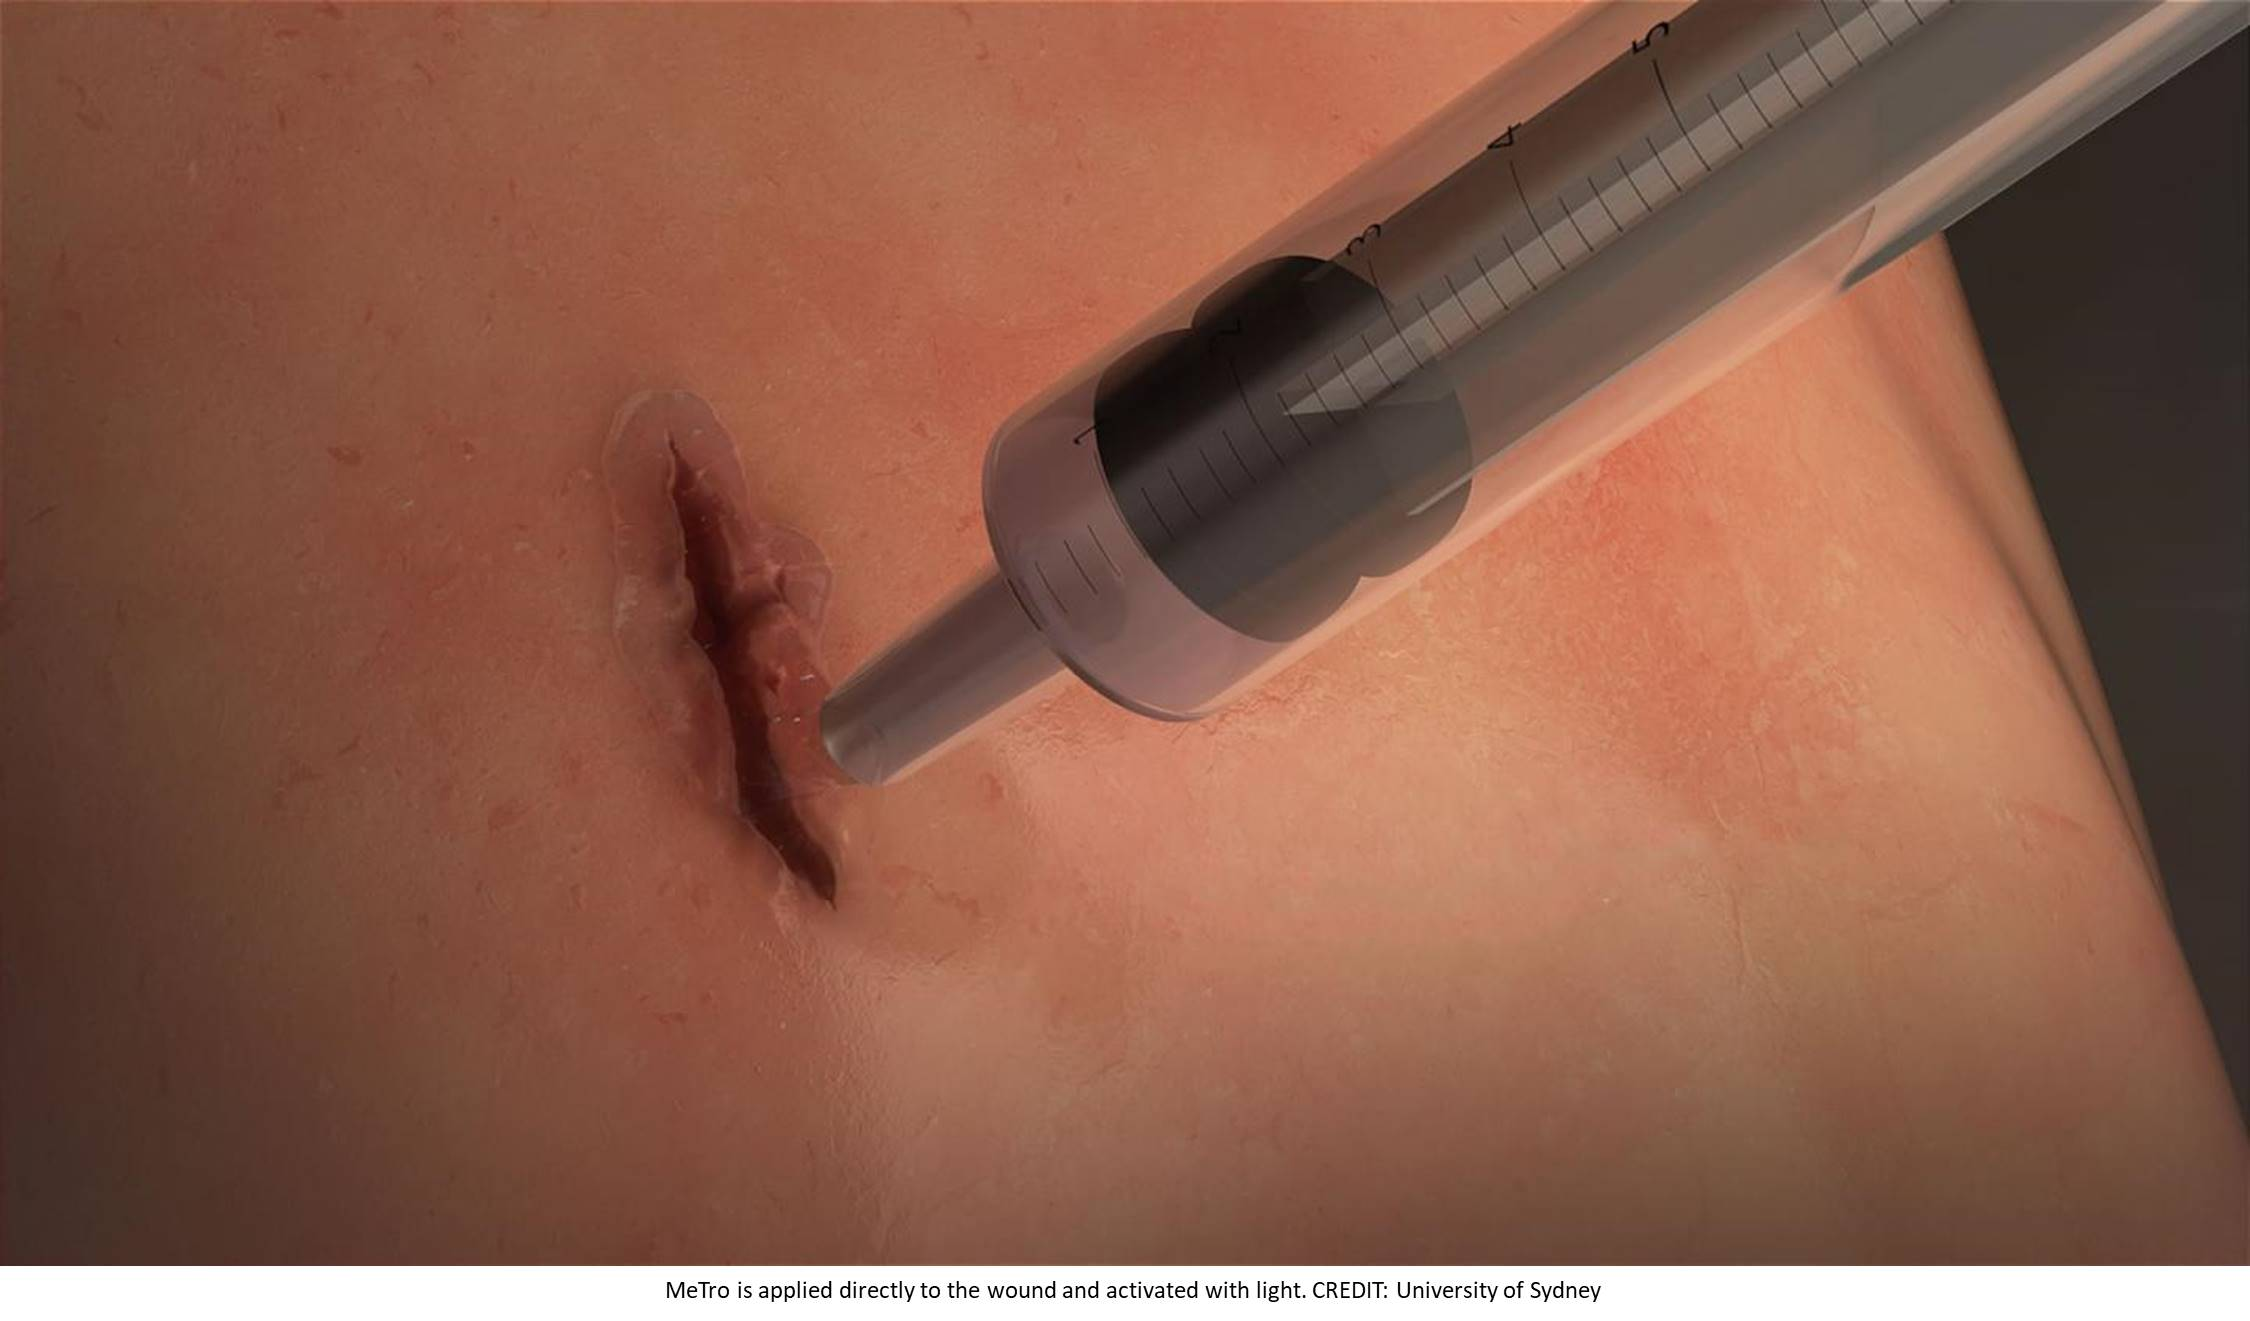 'Squirtable' elastic surgical glue seals wounds in 60 seconds